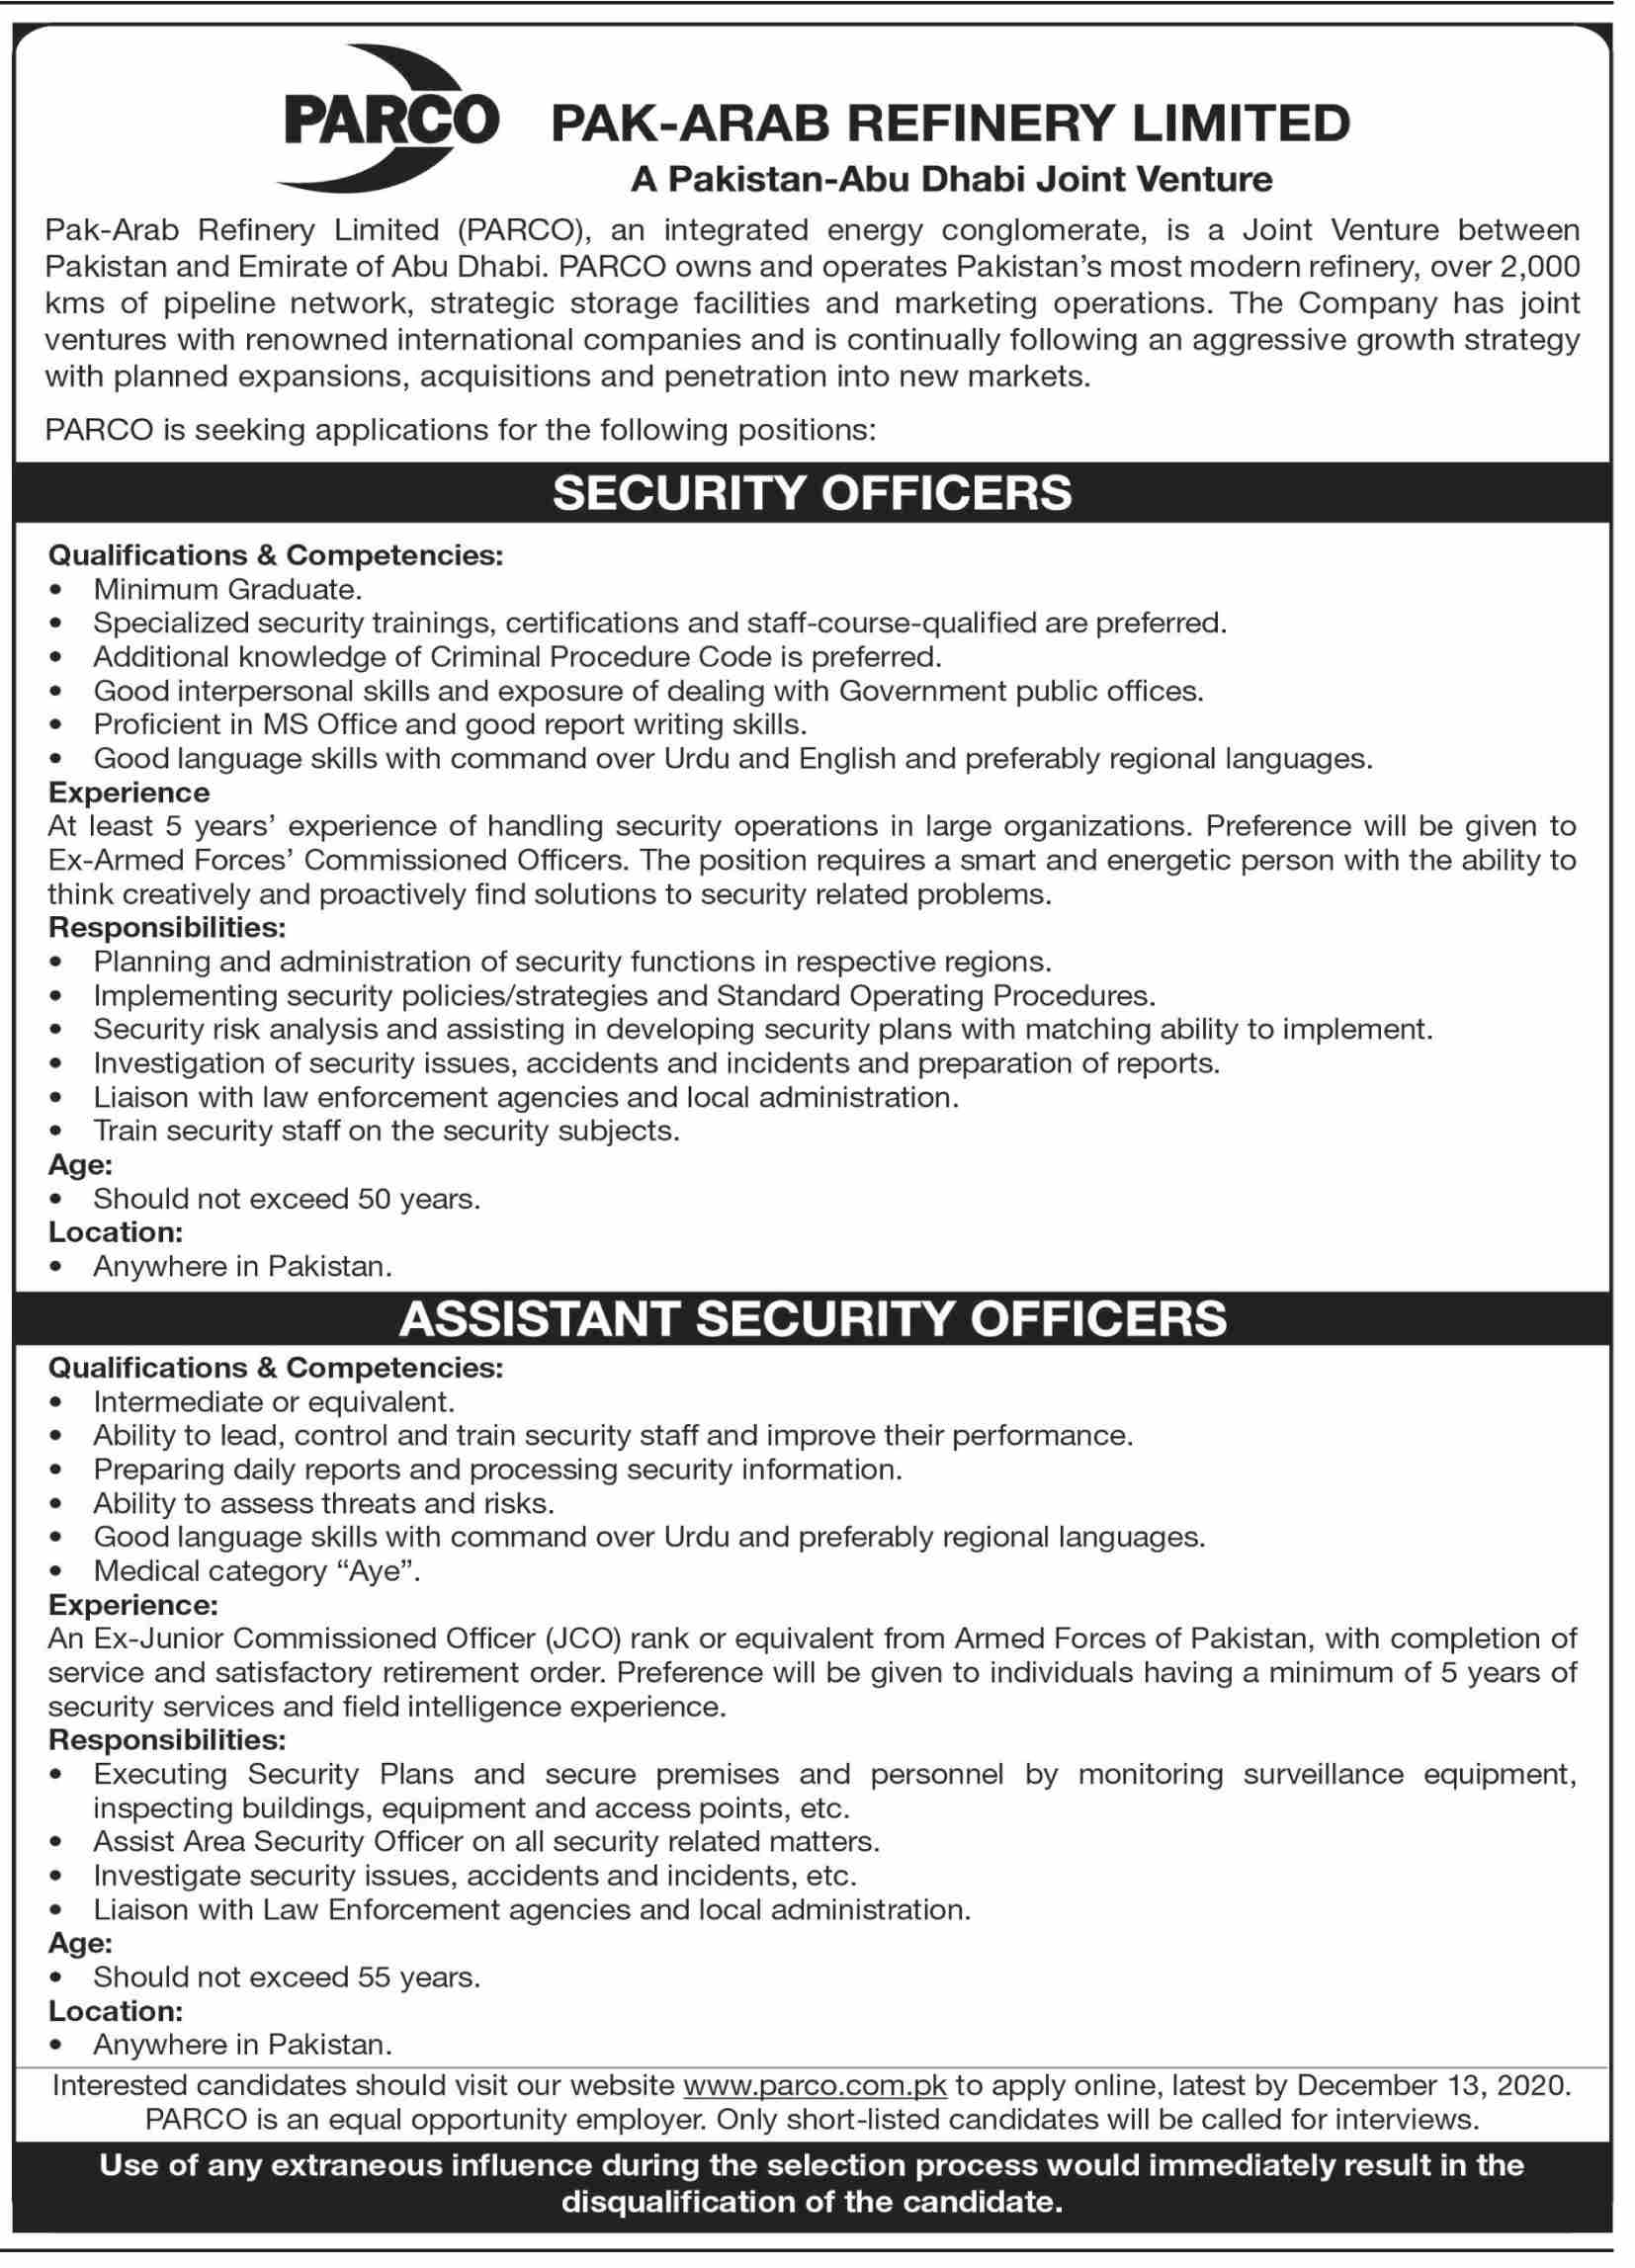 PARCO Pak-Arab Refinery Limited Jobs November 2020